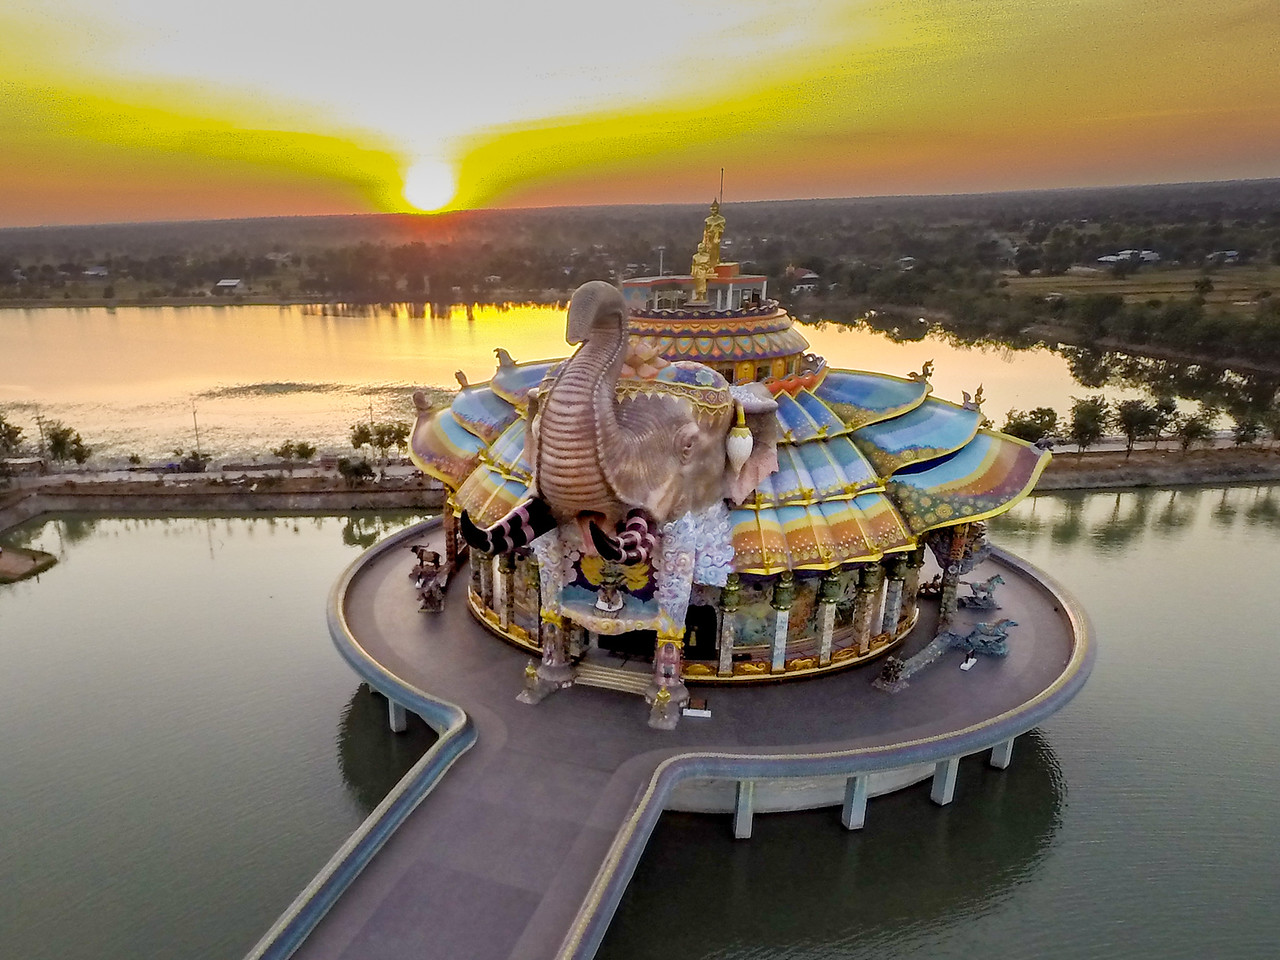 Aerial View of Wat Ban Rai Elephant Temple Thailand from Drone